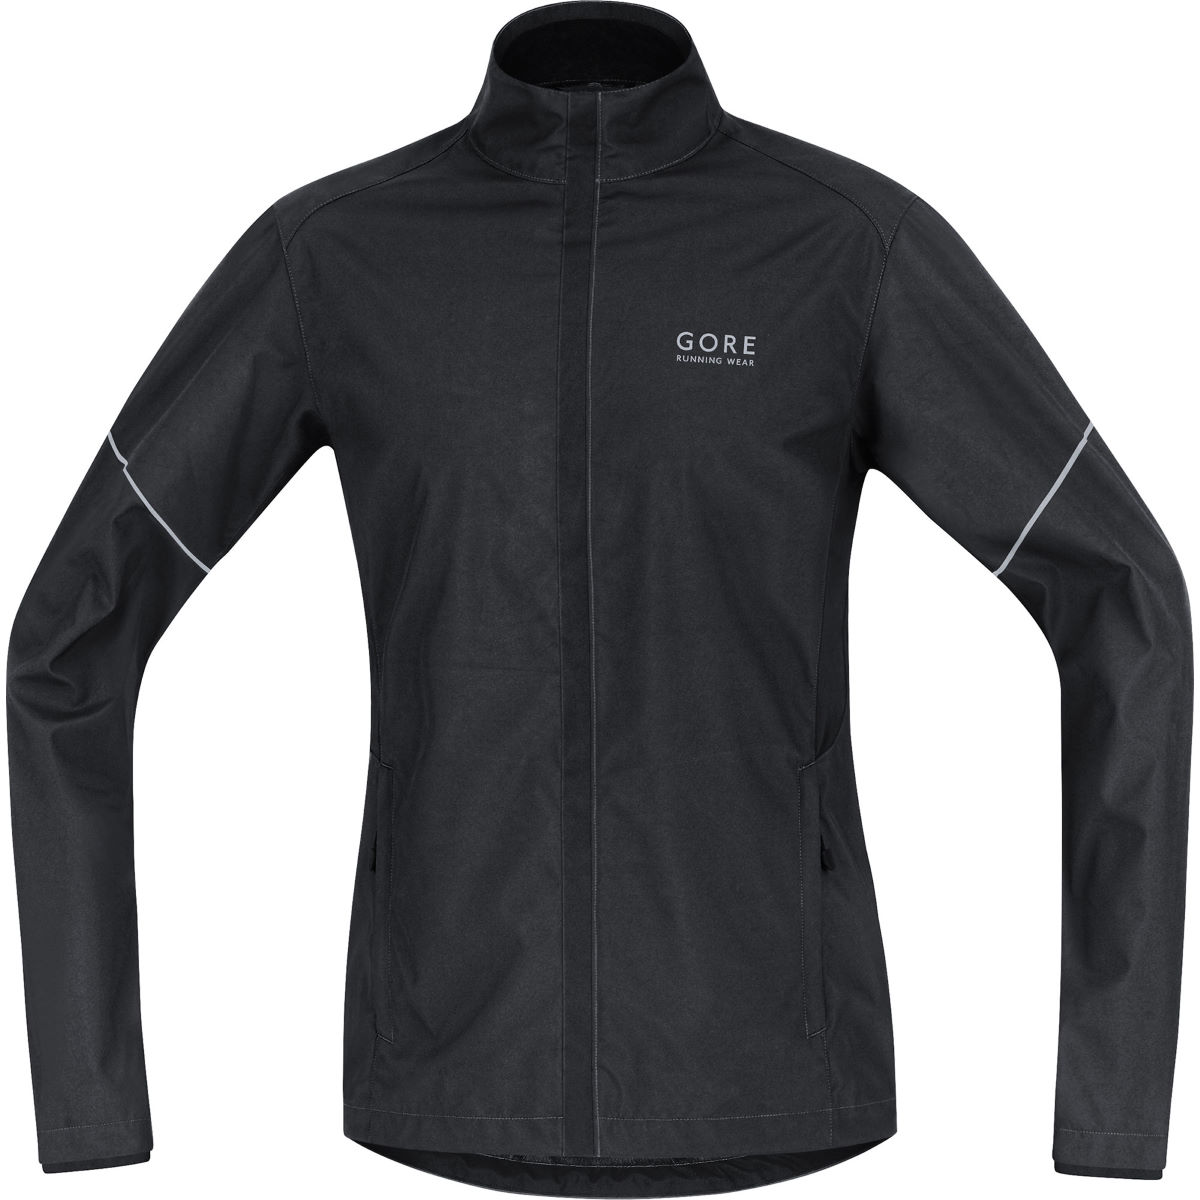 Veste Gore Running Wear WINDSTOPPER® Active Shell Partial (AH16) - S Noir Vestes de running coupe-vent